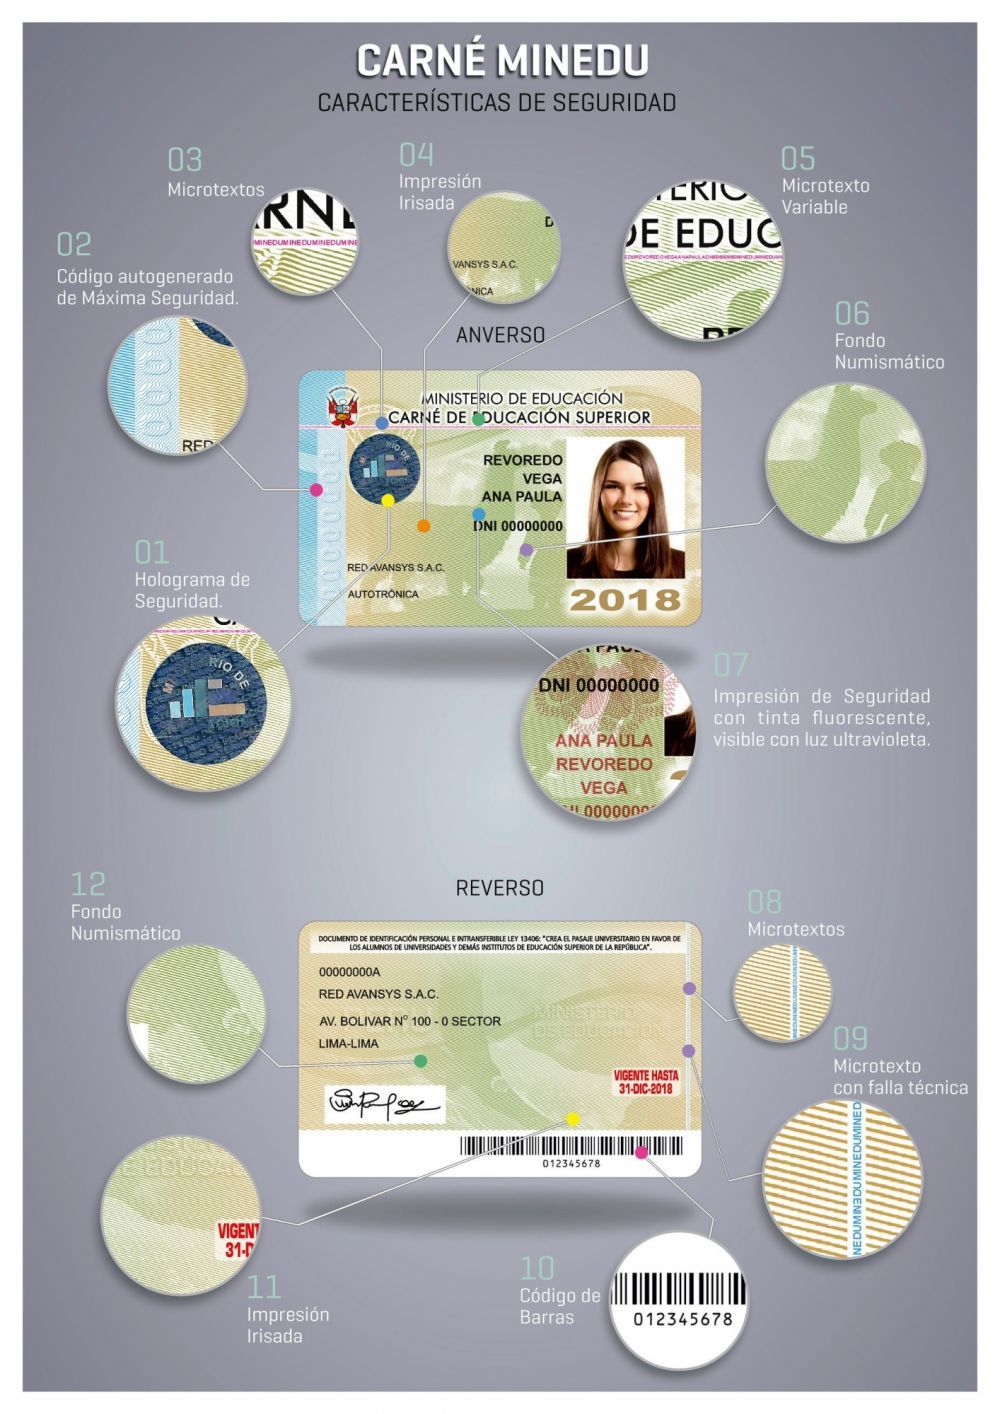 Carnet de institutos